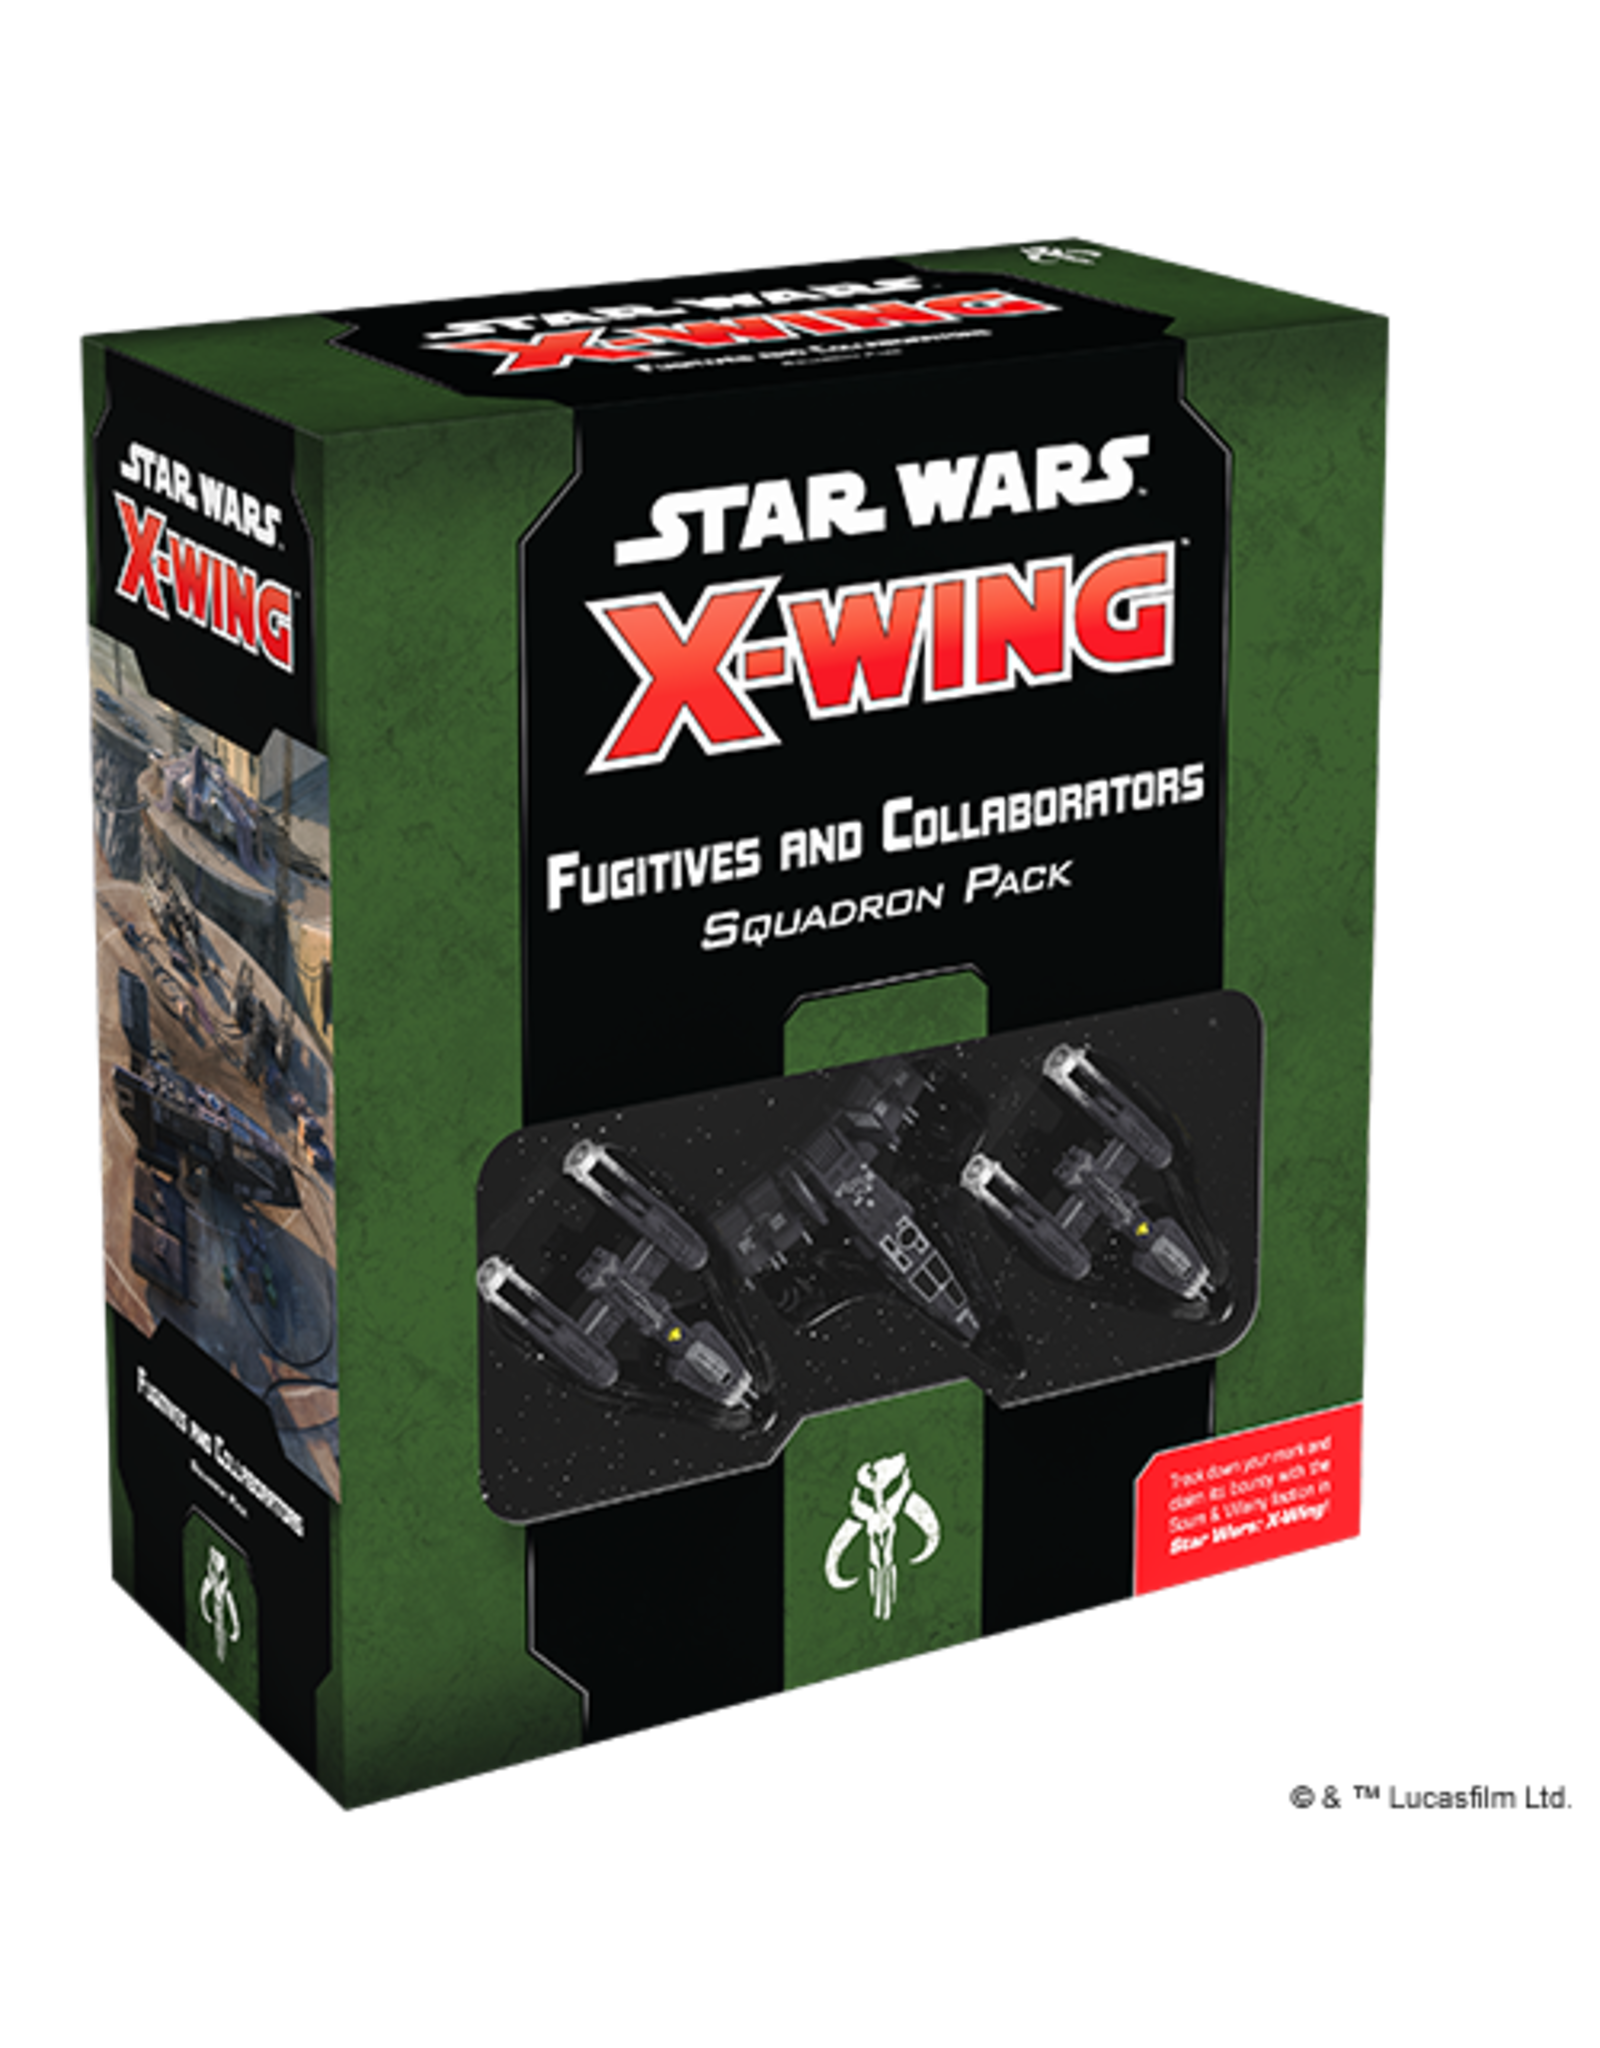 Fantasy Flight Games Star Wars X-wing 2E: Fugitives and Collaborators Squadron Pack